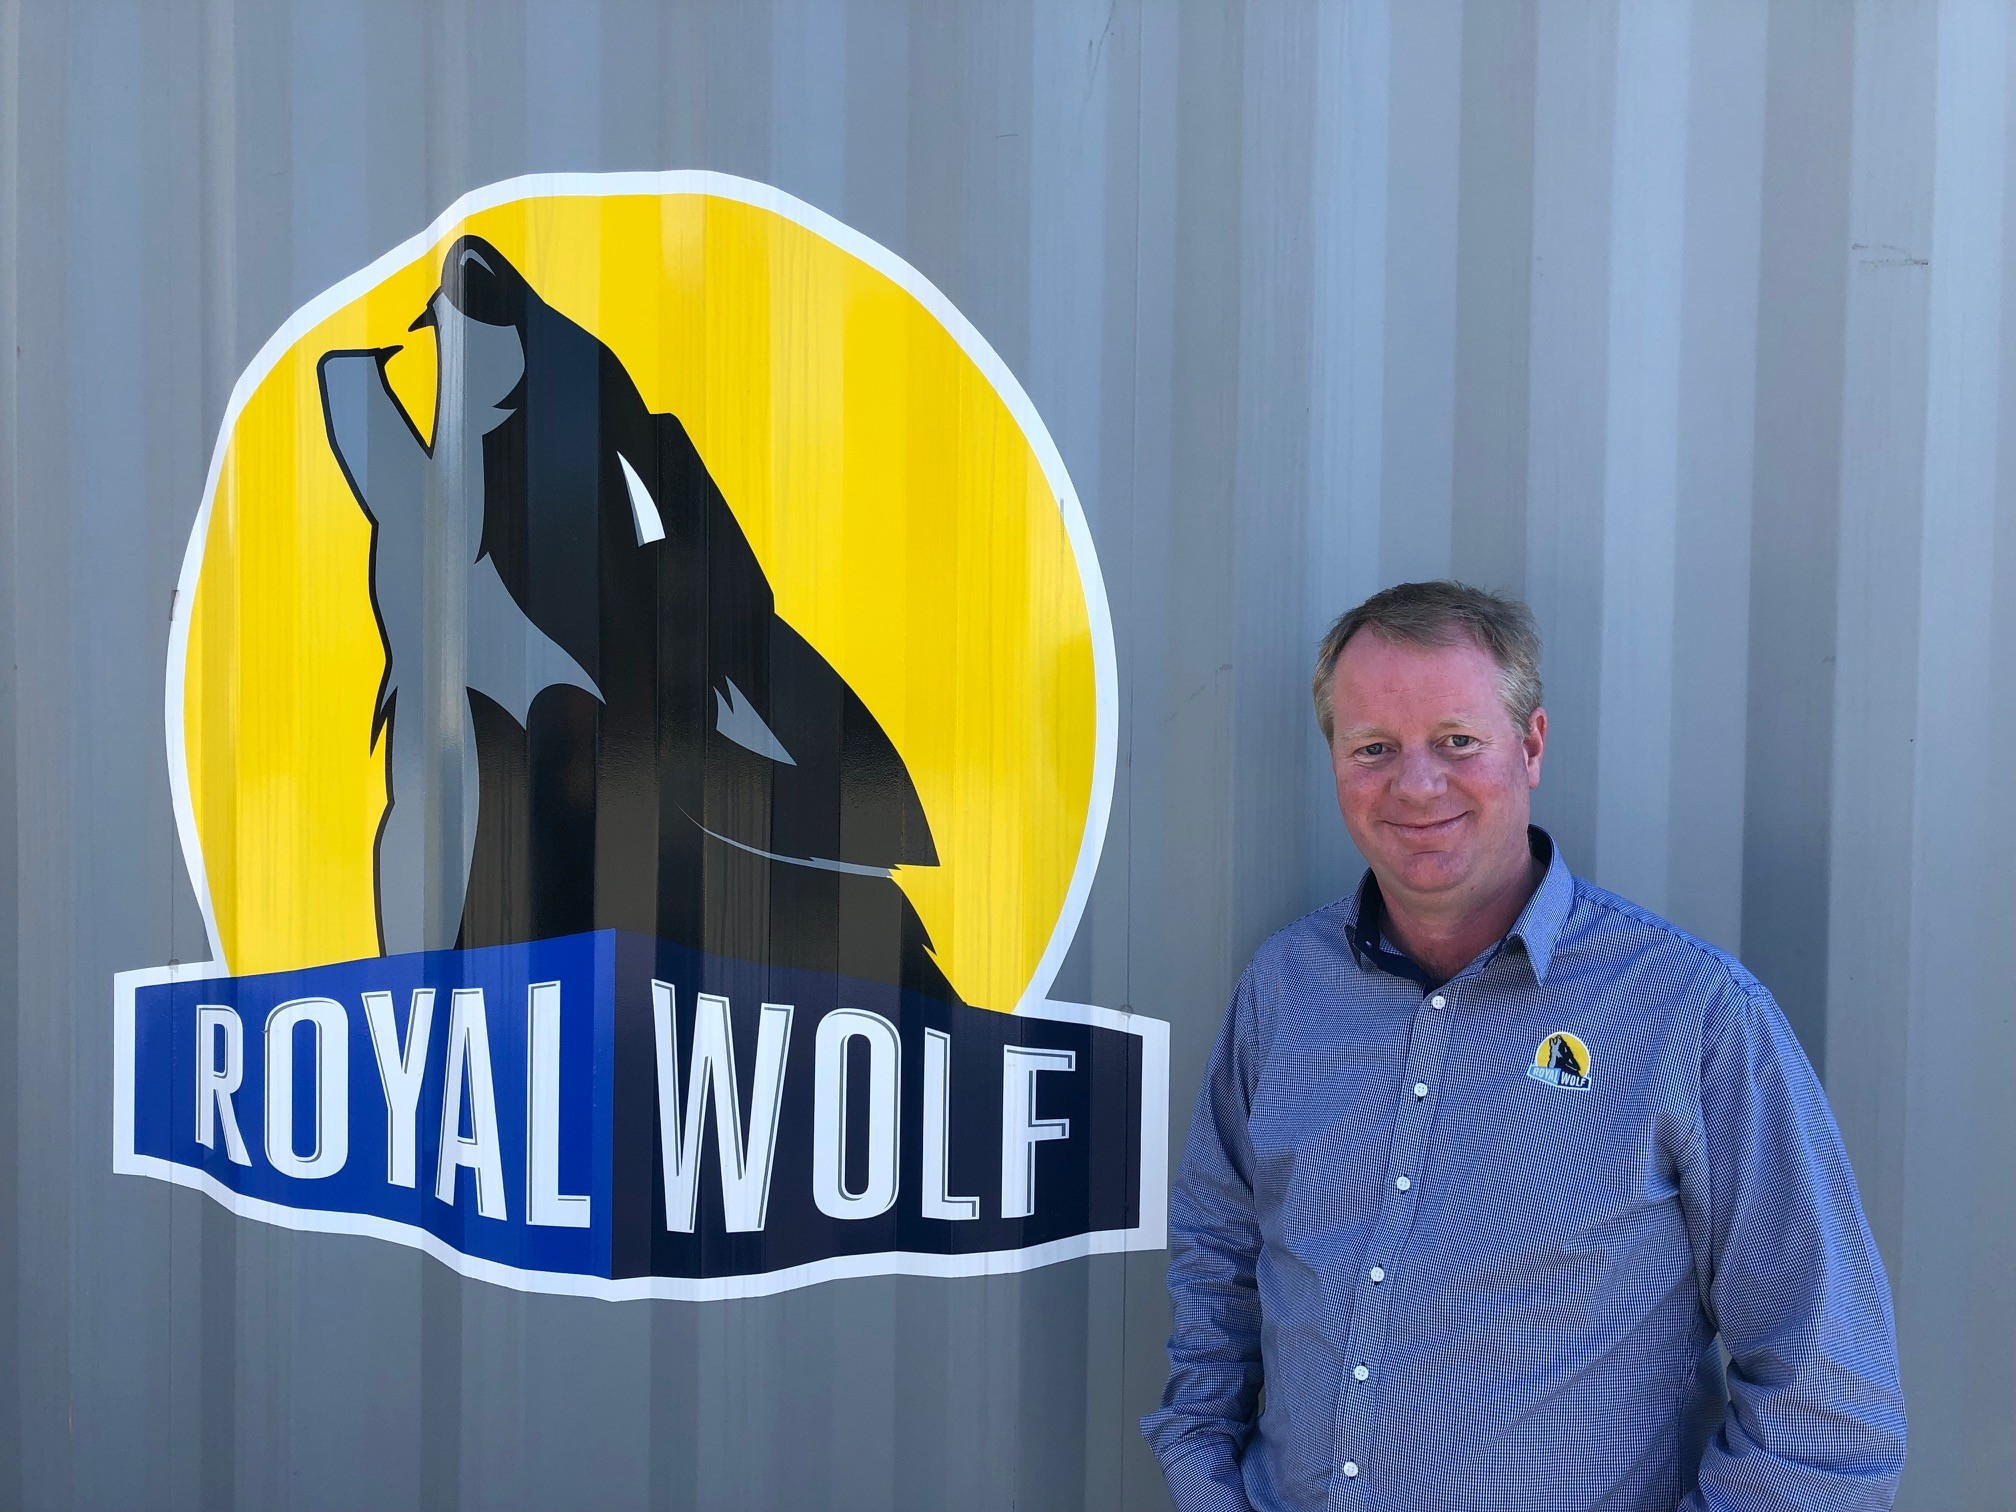 Born and bred local, David Grieve, who has relocated back to the area after a stint in Australia, is managing our new faciltiy in Cromwell.